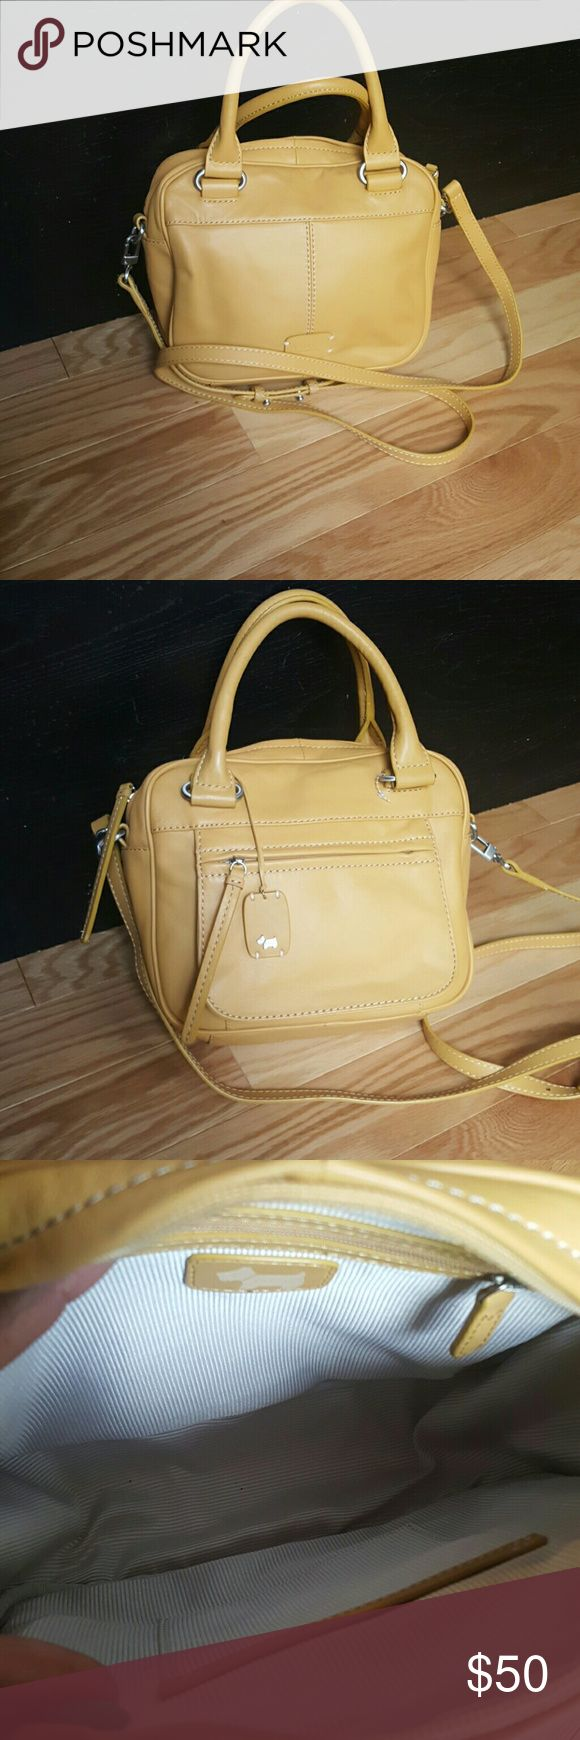 Leather Radley Purse Mustard yellow Radley Purse Comes with long cross body strap. In excellent condition.  No signs of wear! Radley  Bags Crossbody Bags